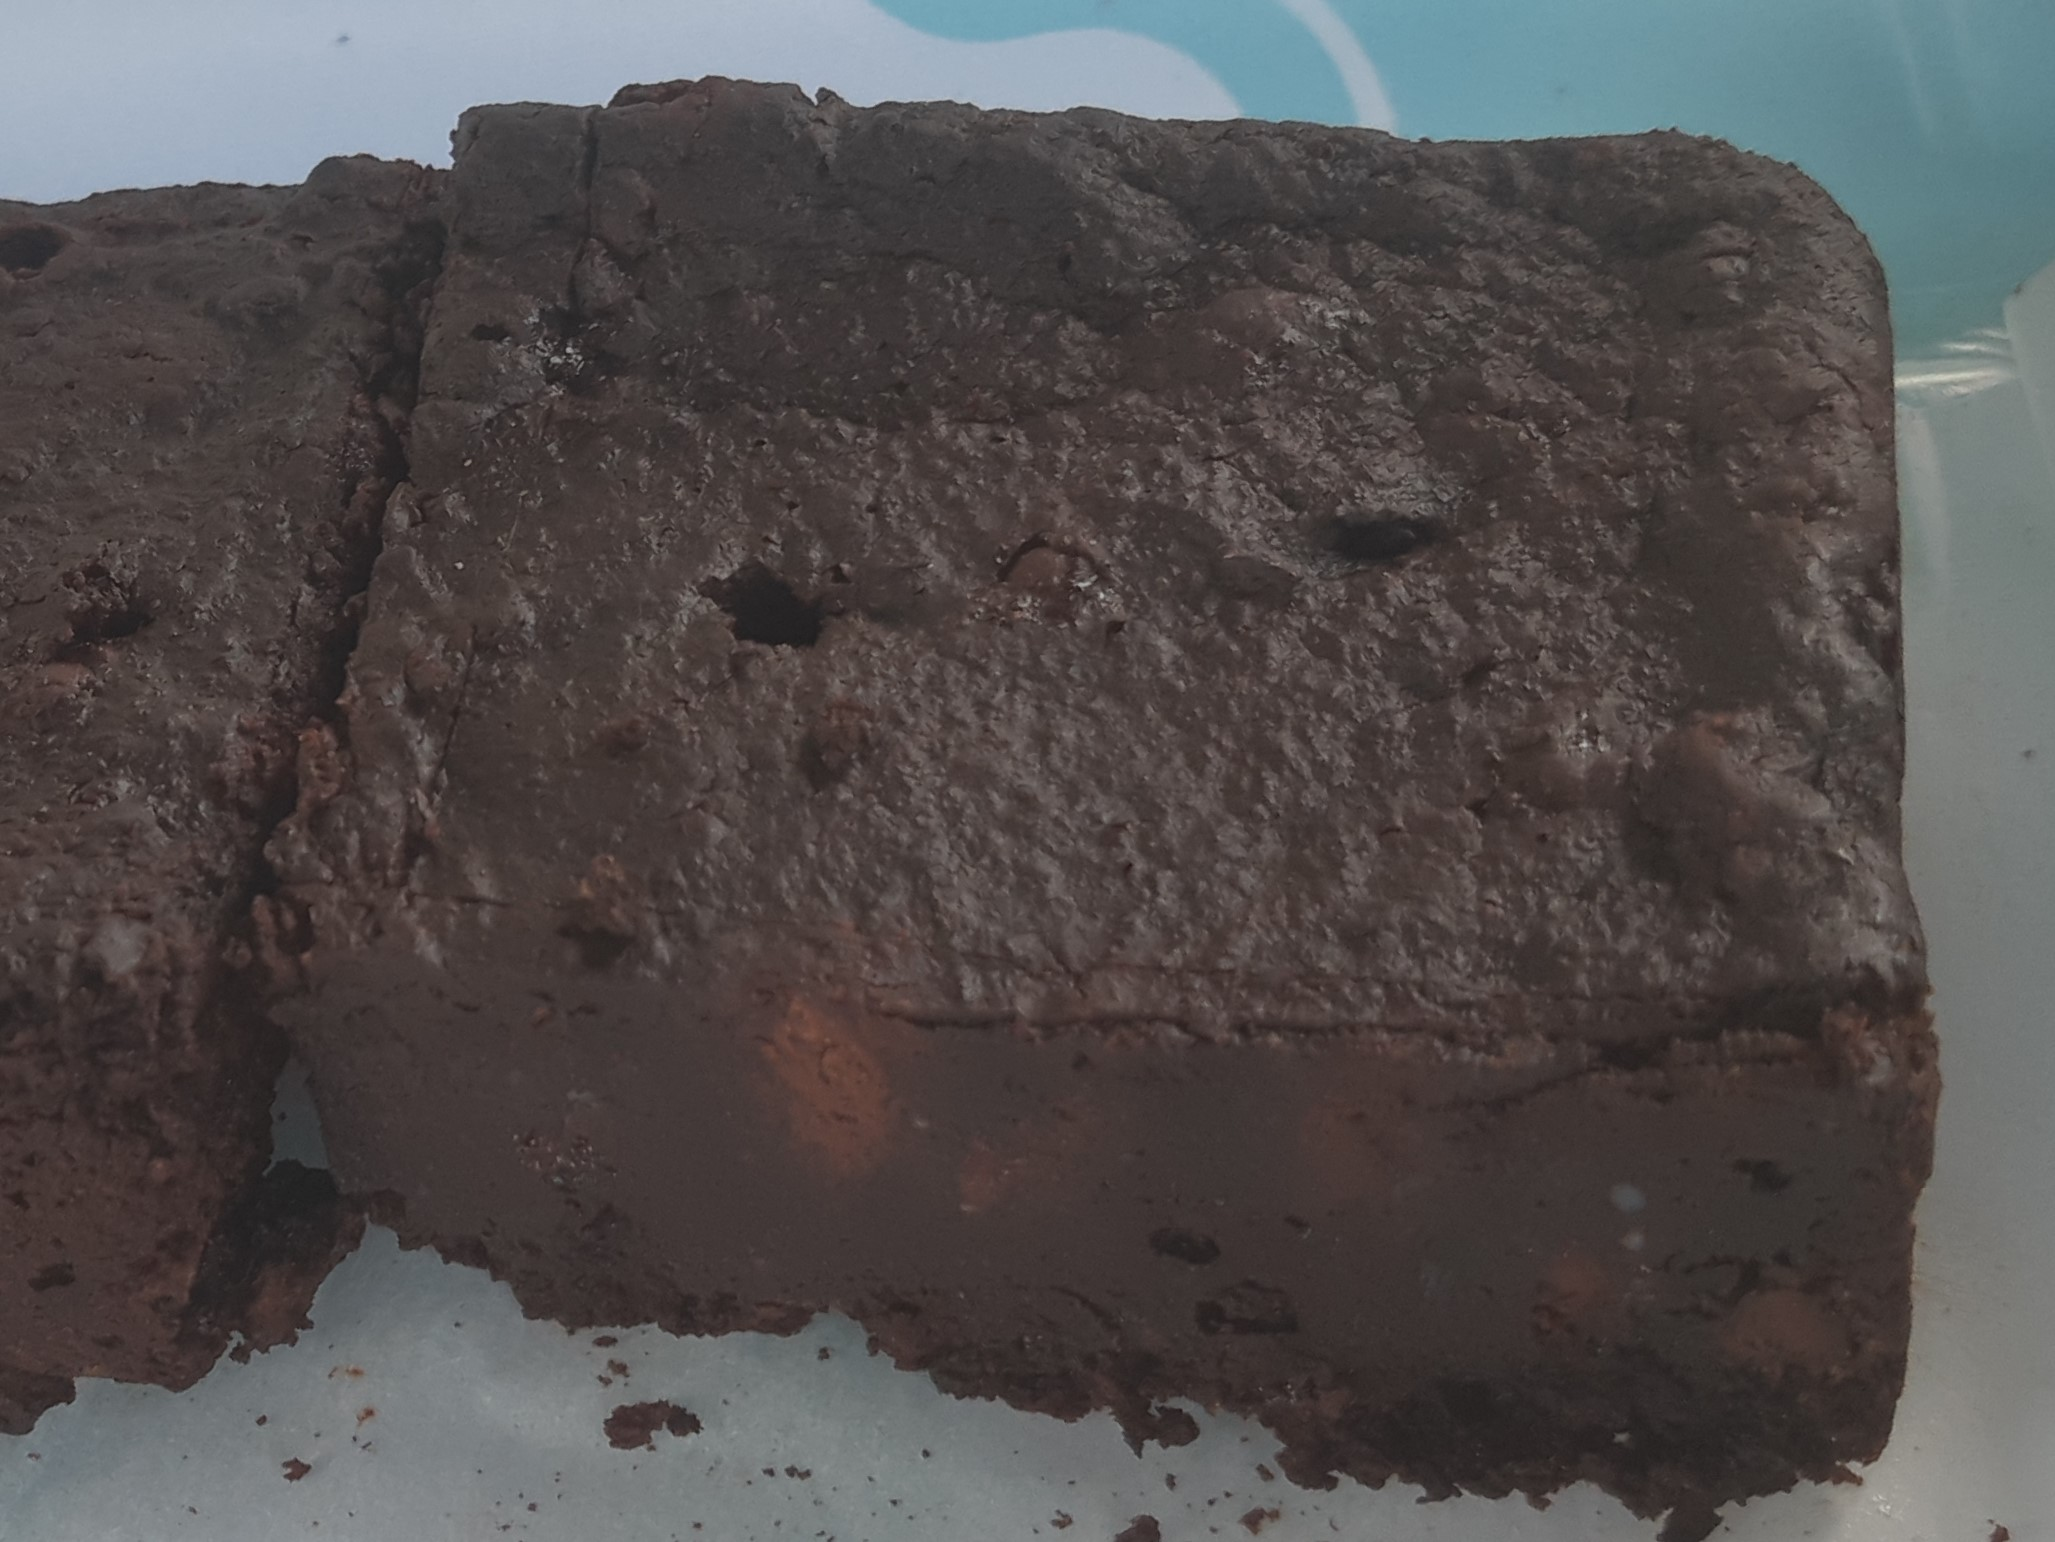 AterImber.com - The Veg Life - Vegandale Festival 2019 Review - Sweet Nutritionista's Beet Brownie - vegan food, food reviewer, vegan festival